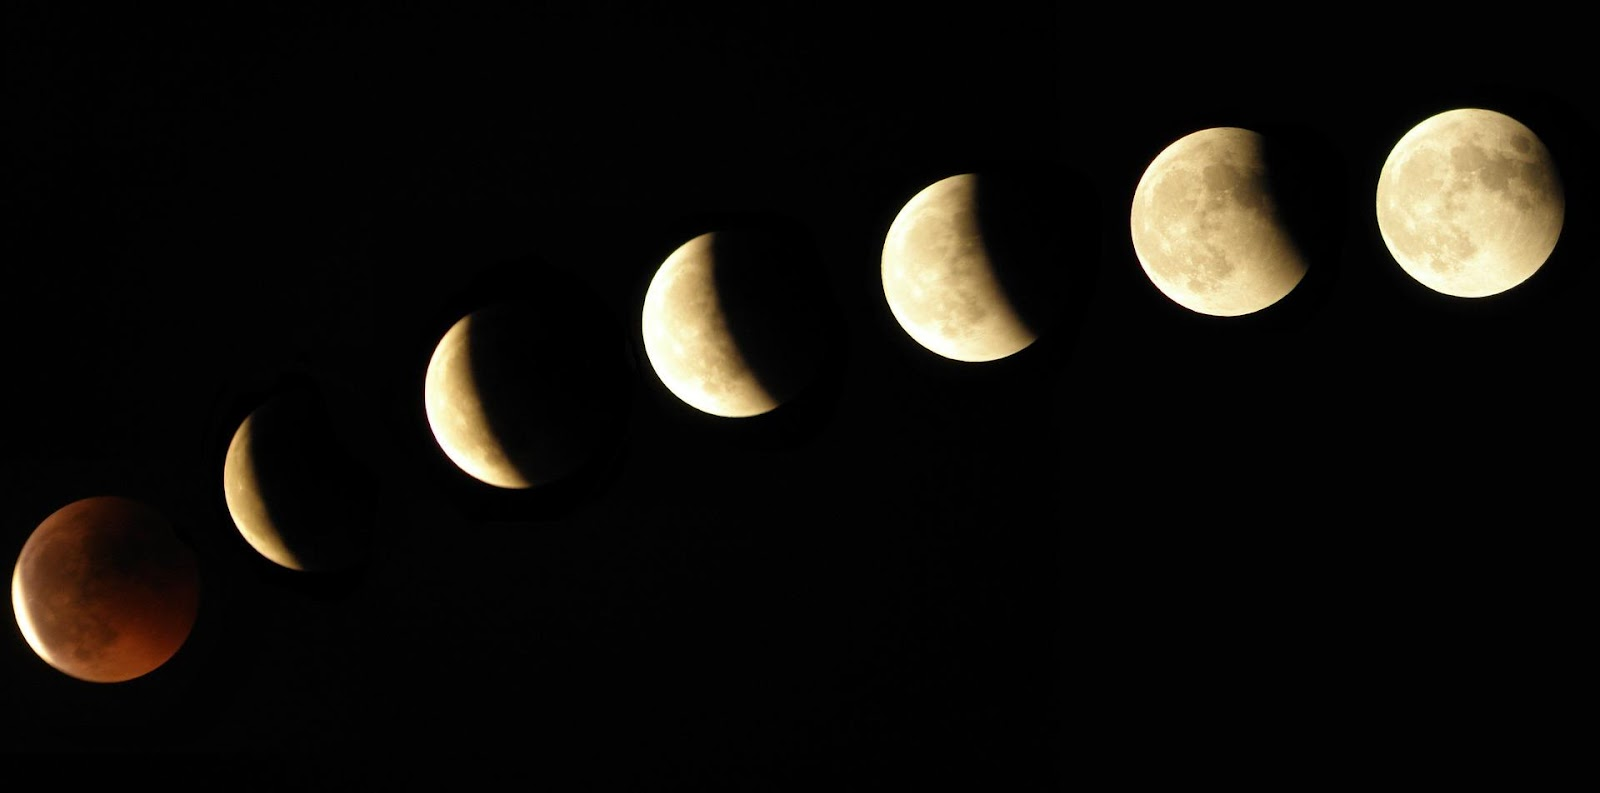 time lapse photo of moon stages